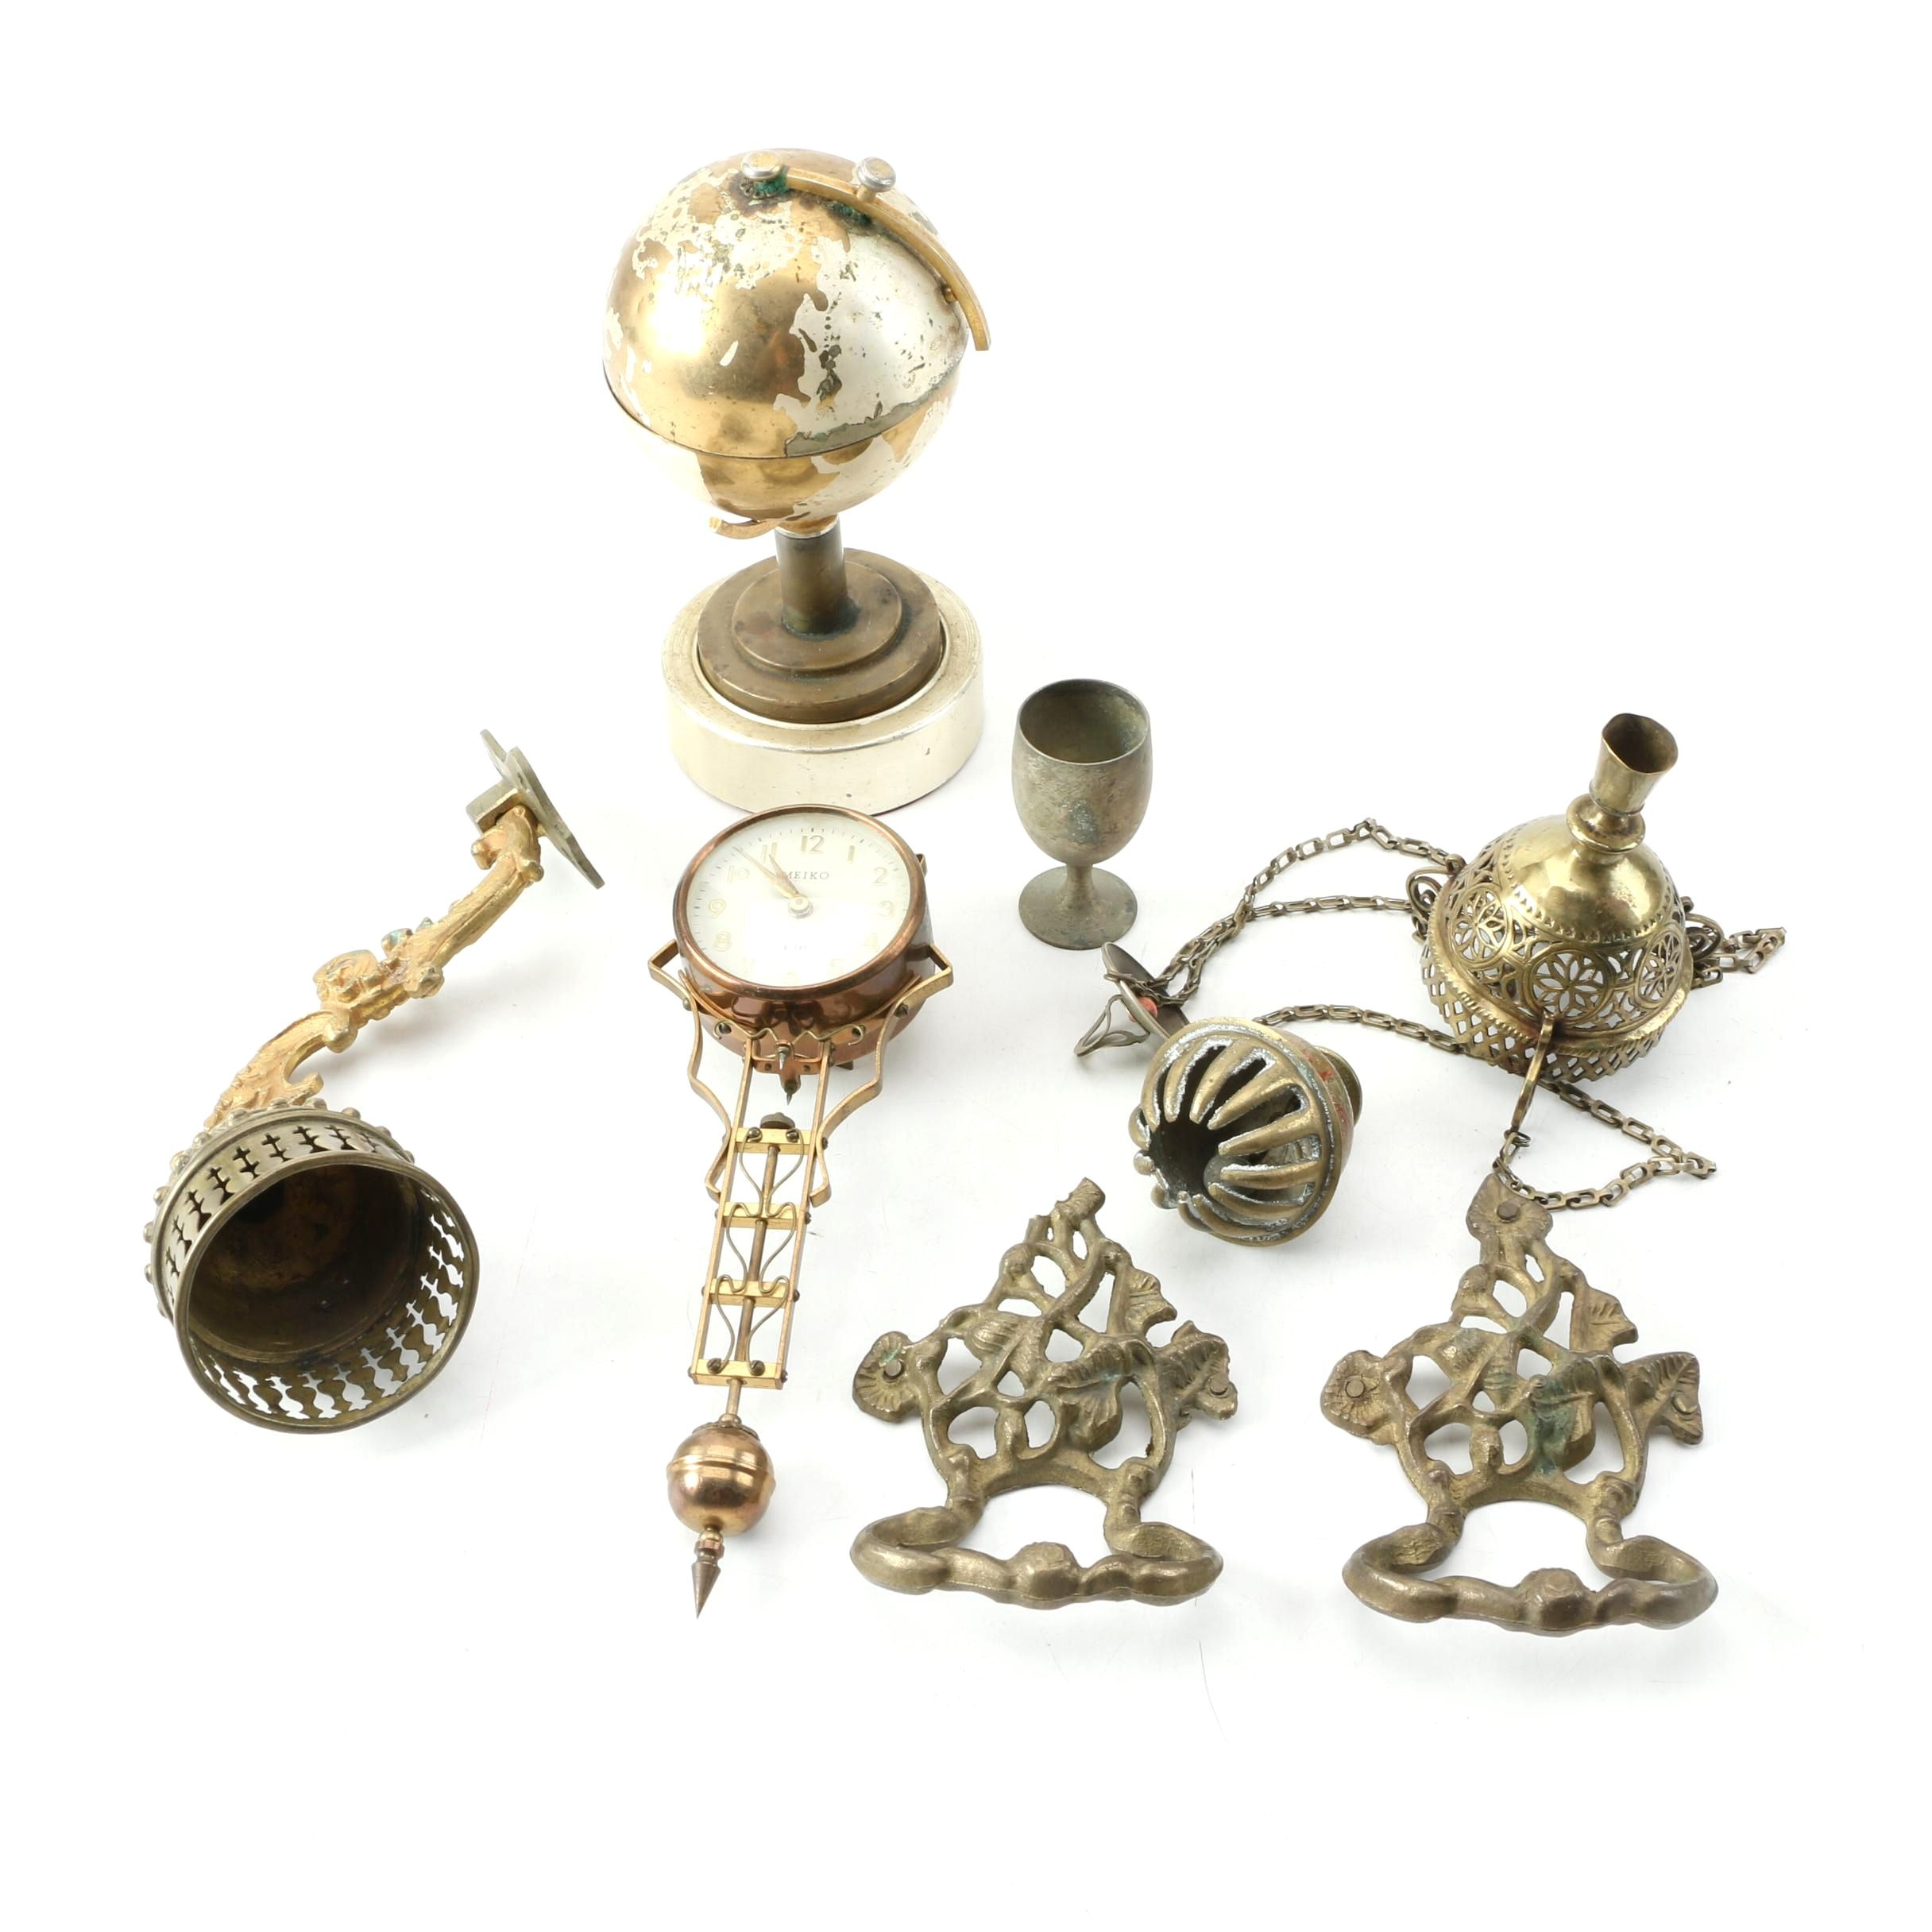 Brass Globe Cigarette Holder, Eight Day Clock and Others